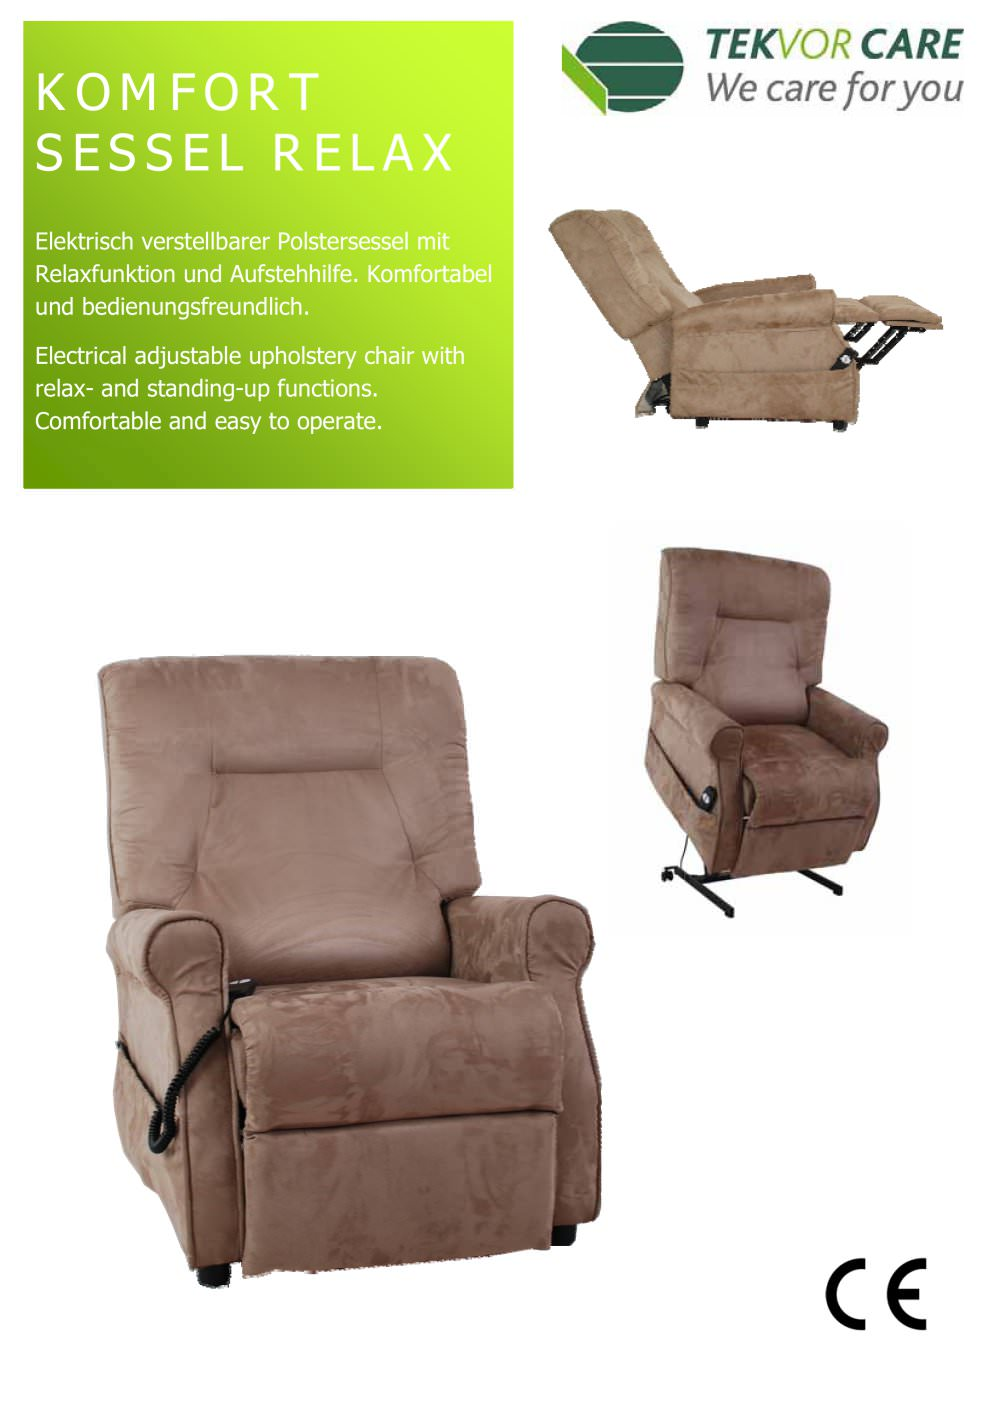 Chair Sessel Komfort Sessel Relax Tekvor Care Pdf Catalogs Technical